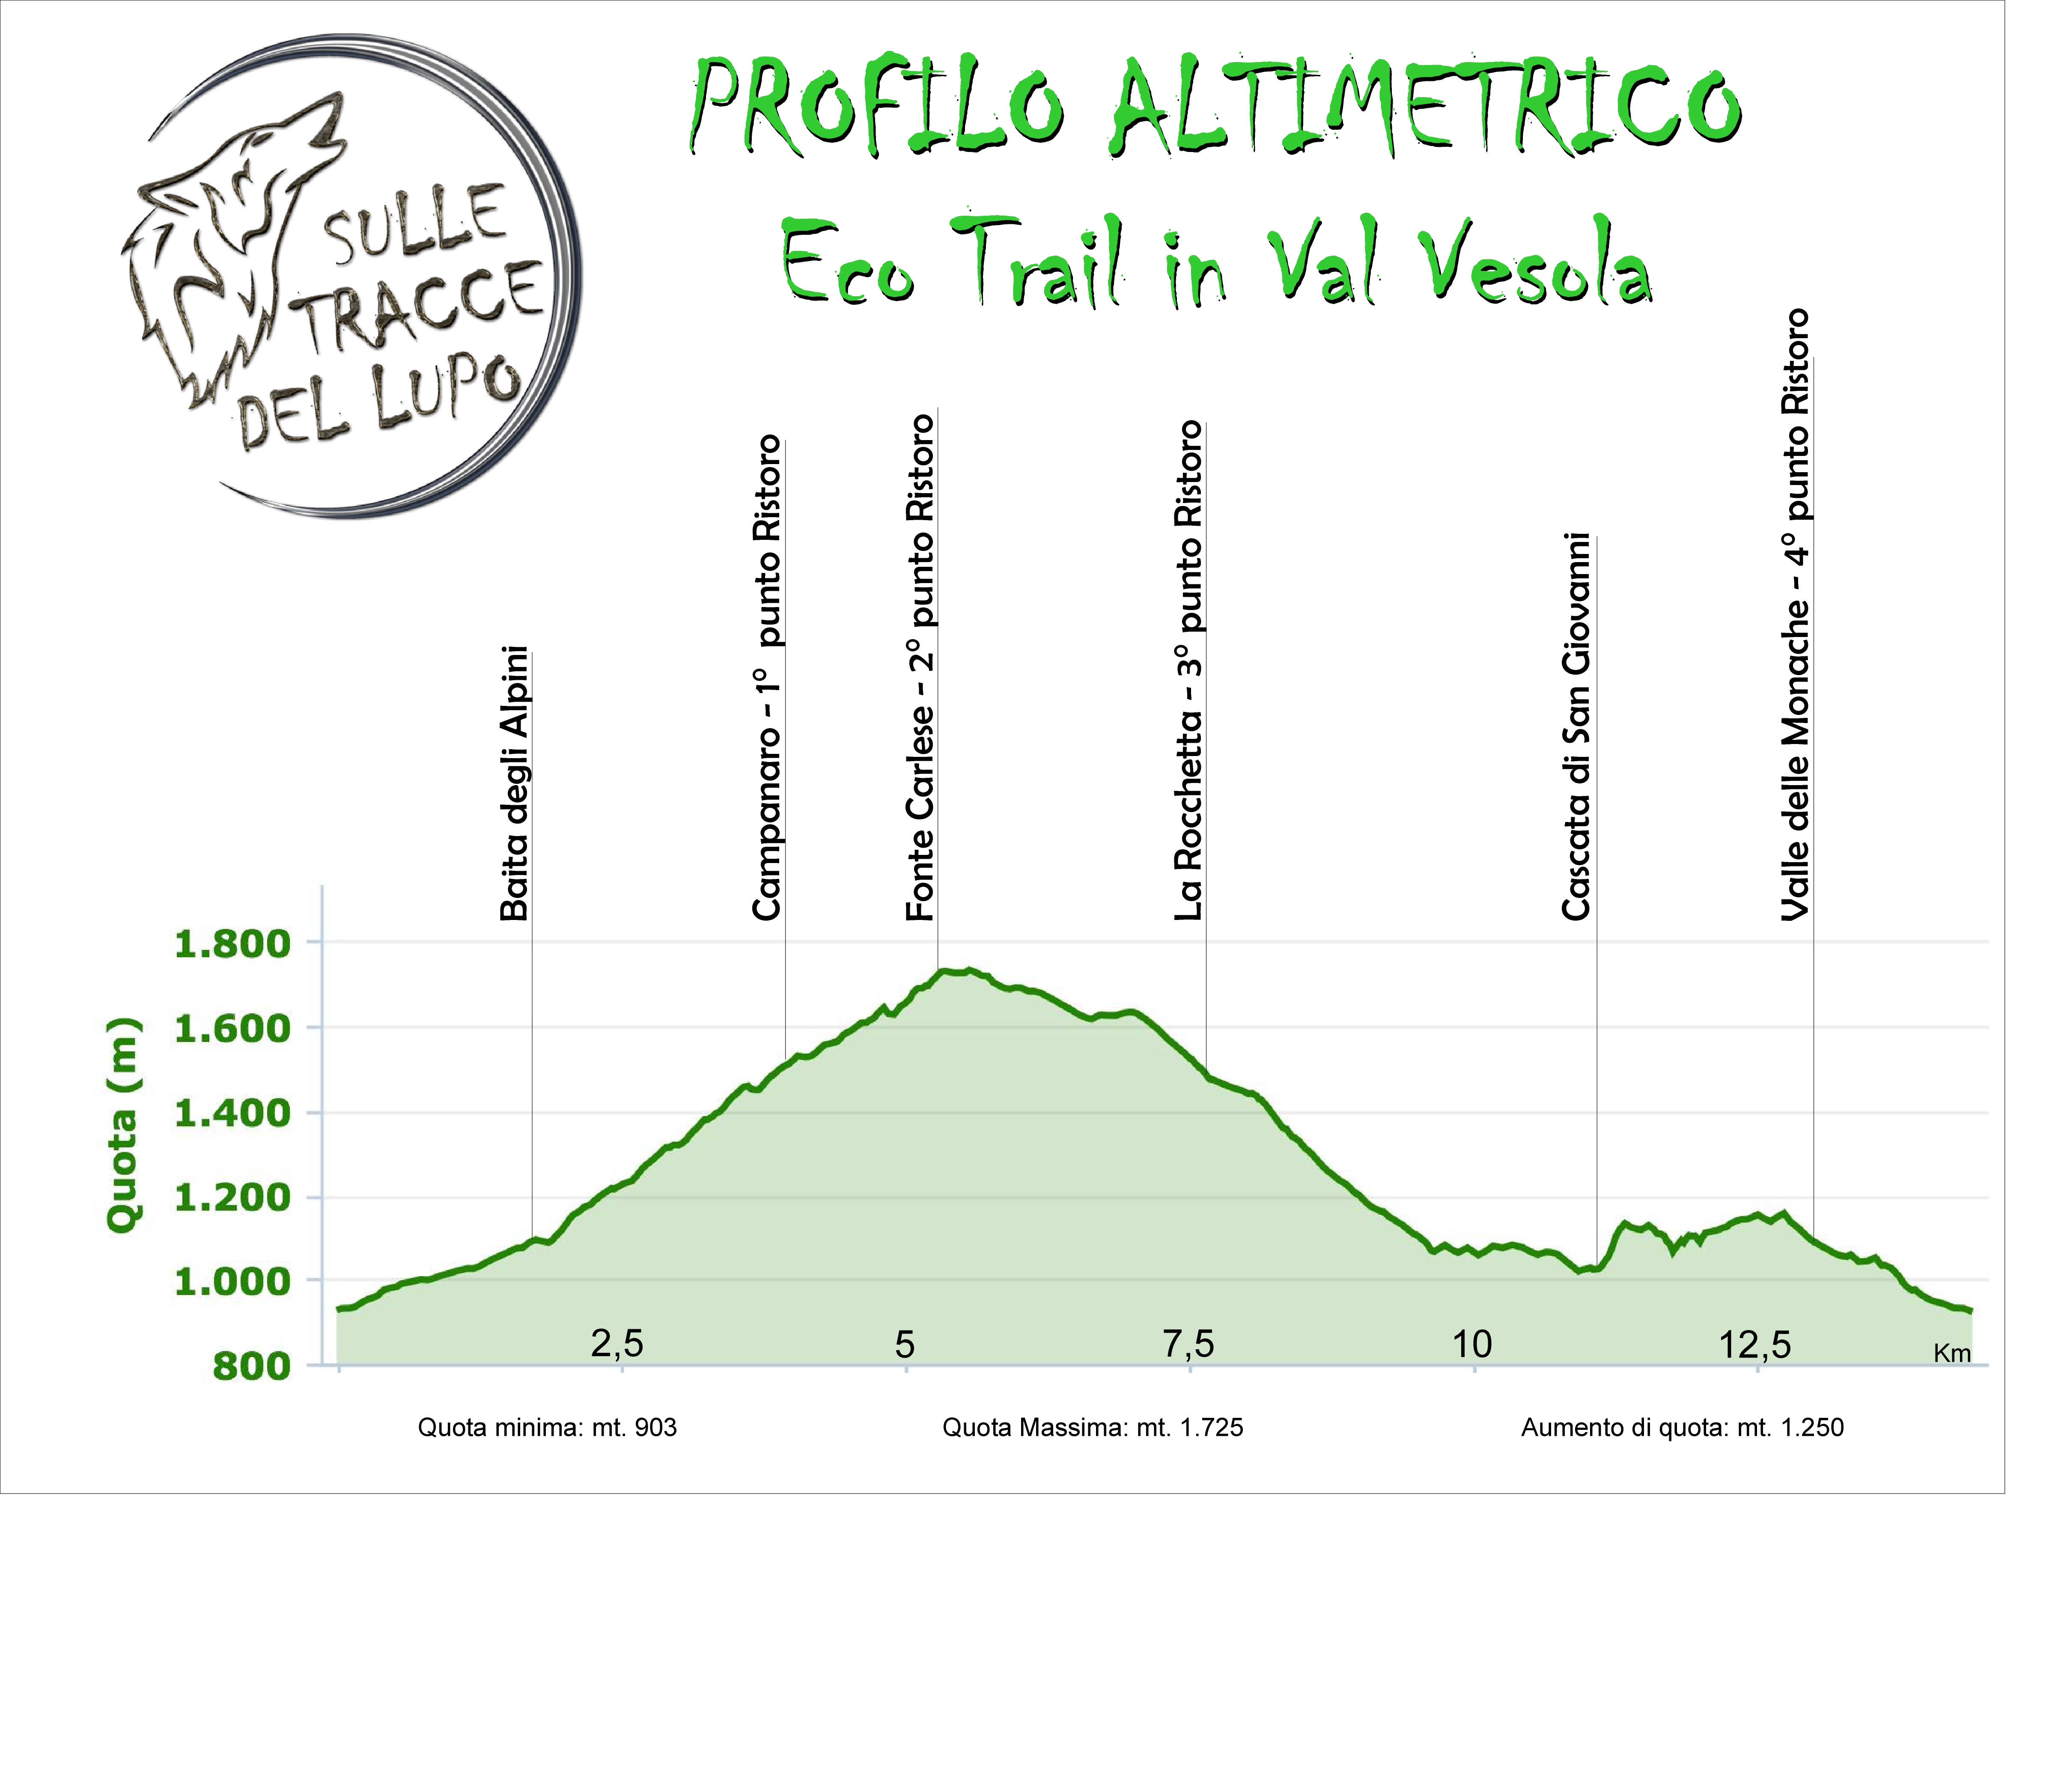 Altimetria Eco Trail in Val Vesola